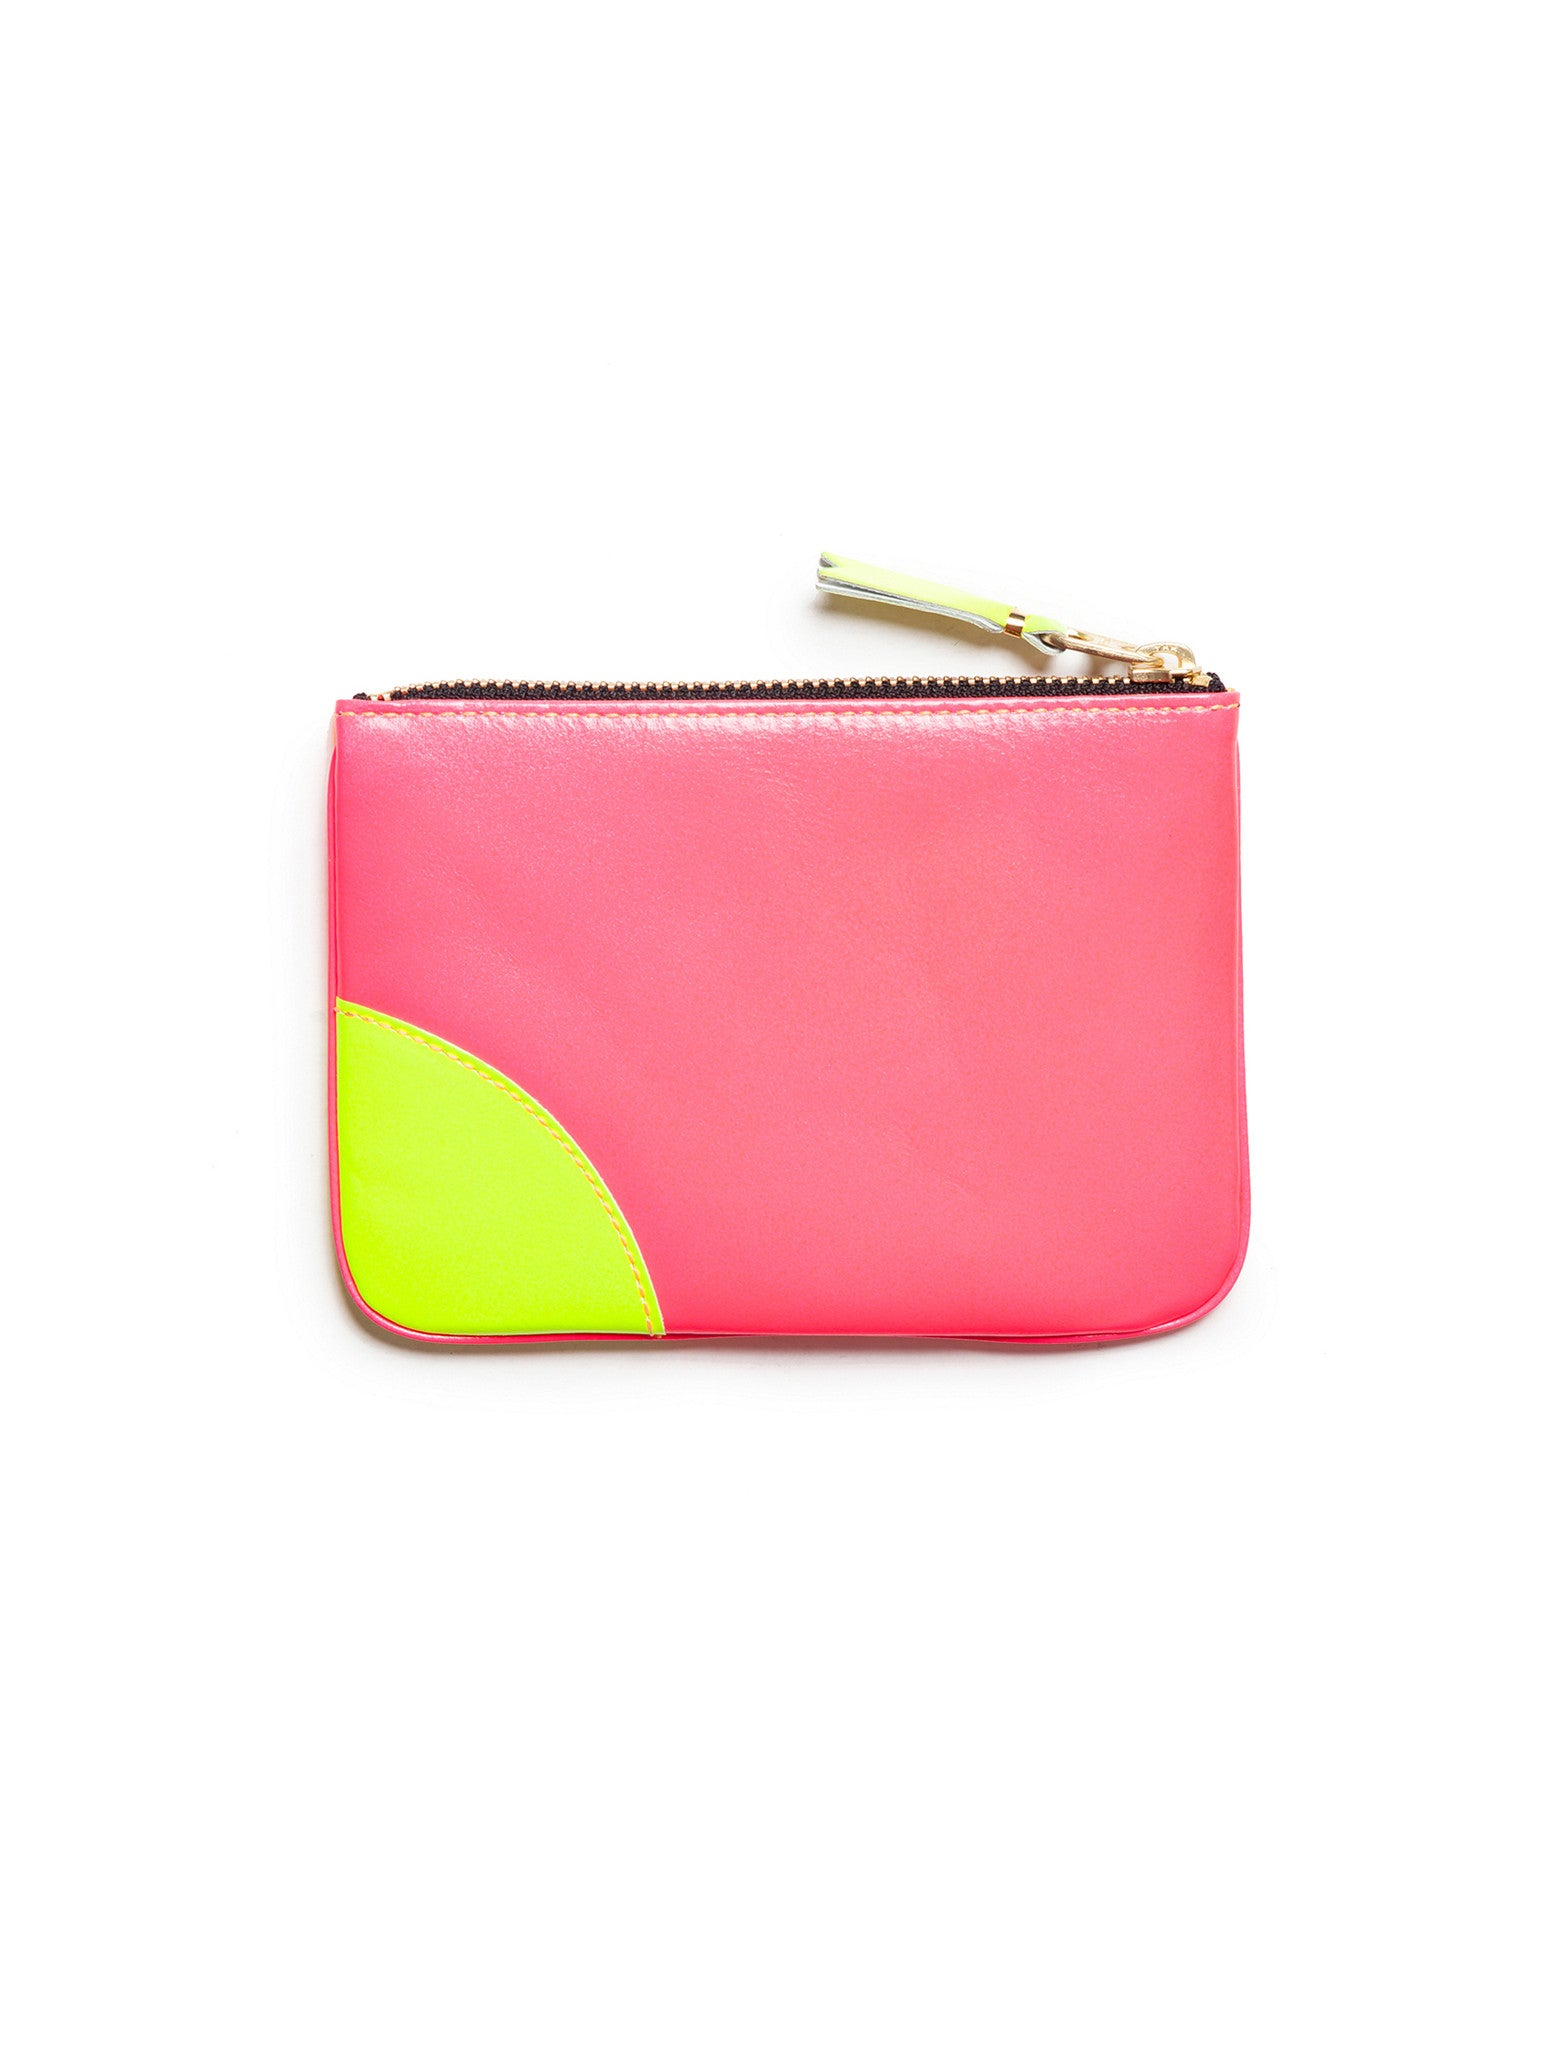 Super Fluo Classic Wallet - Orange/Pink - SA8100SF